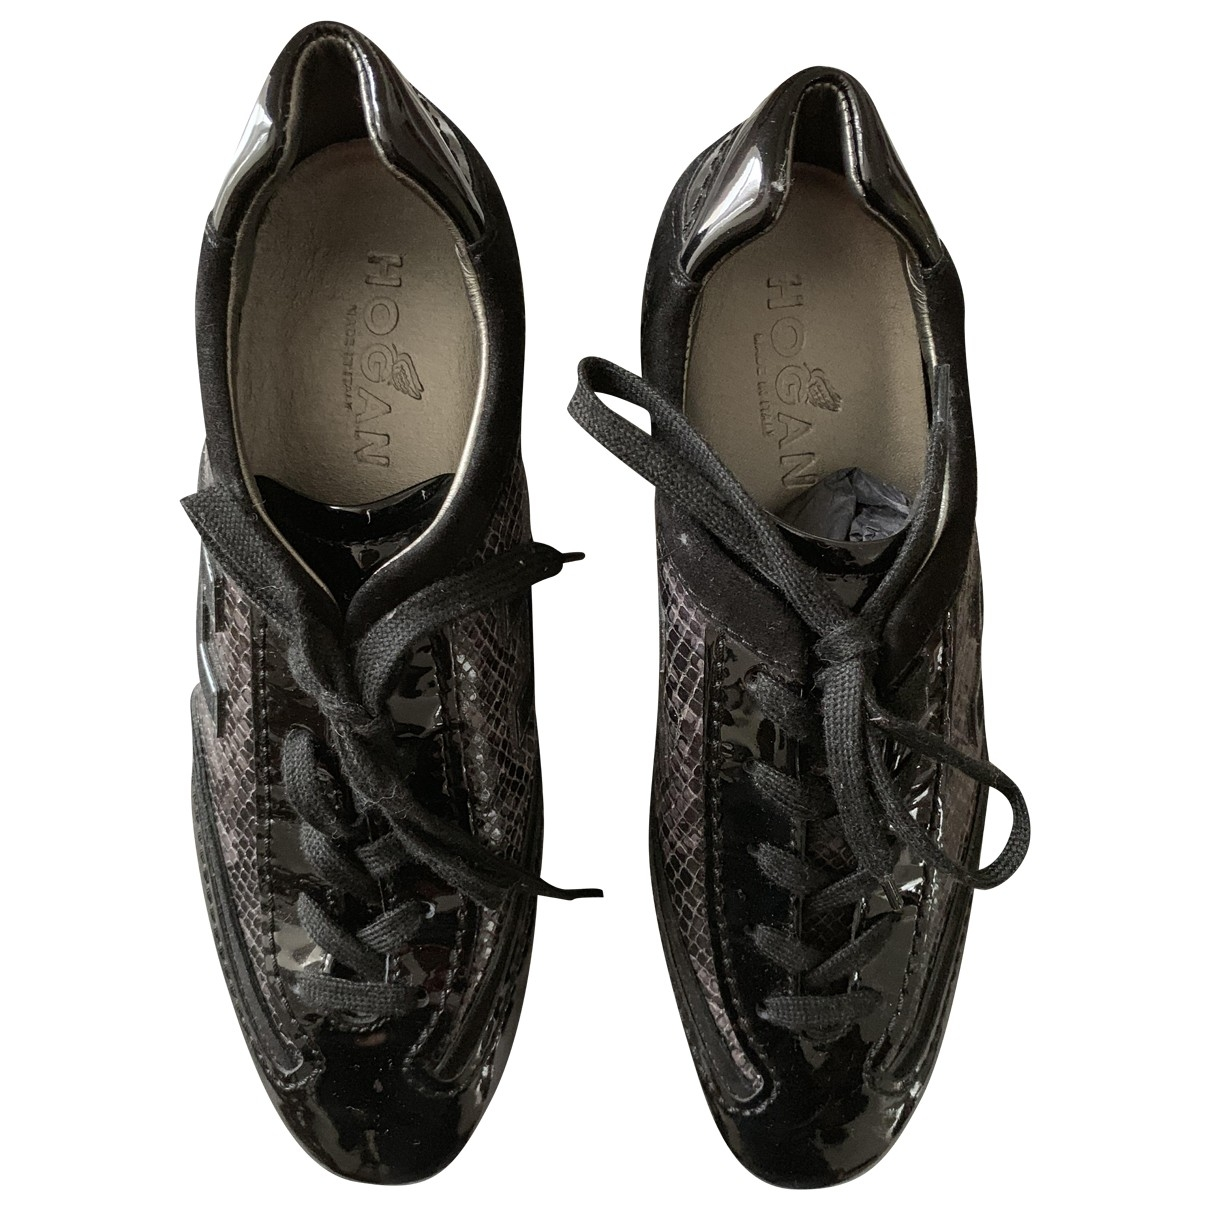 Hogan \N Black Patent leather Trainers for Women 36.5 EU